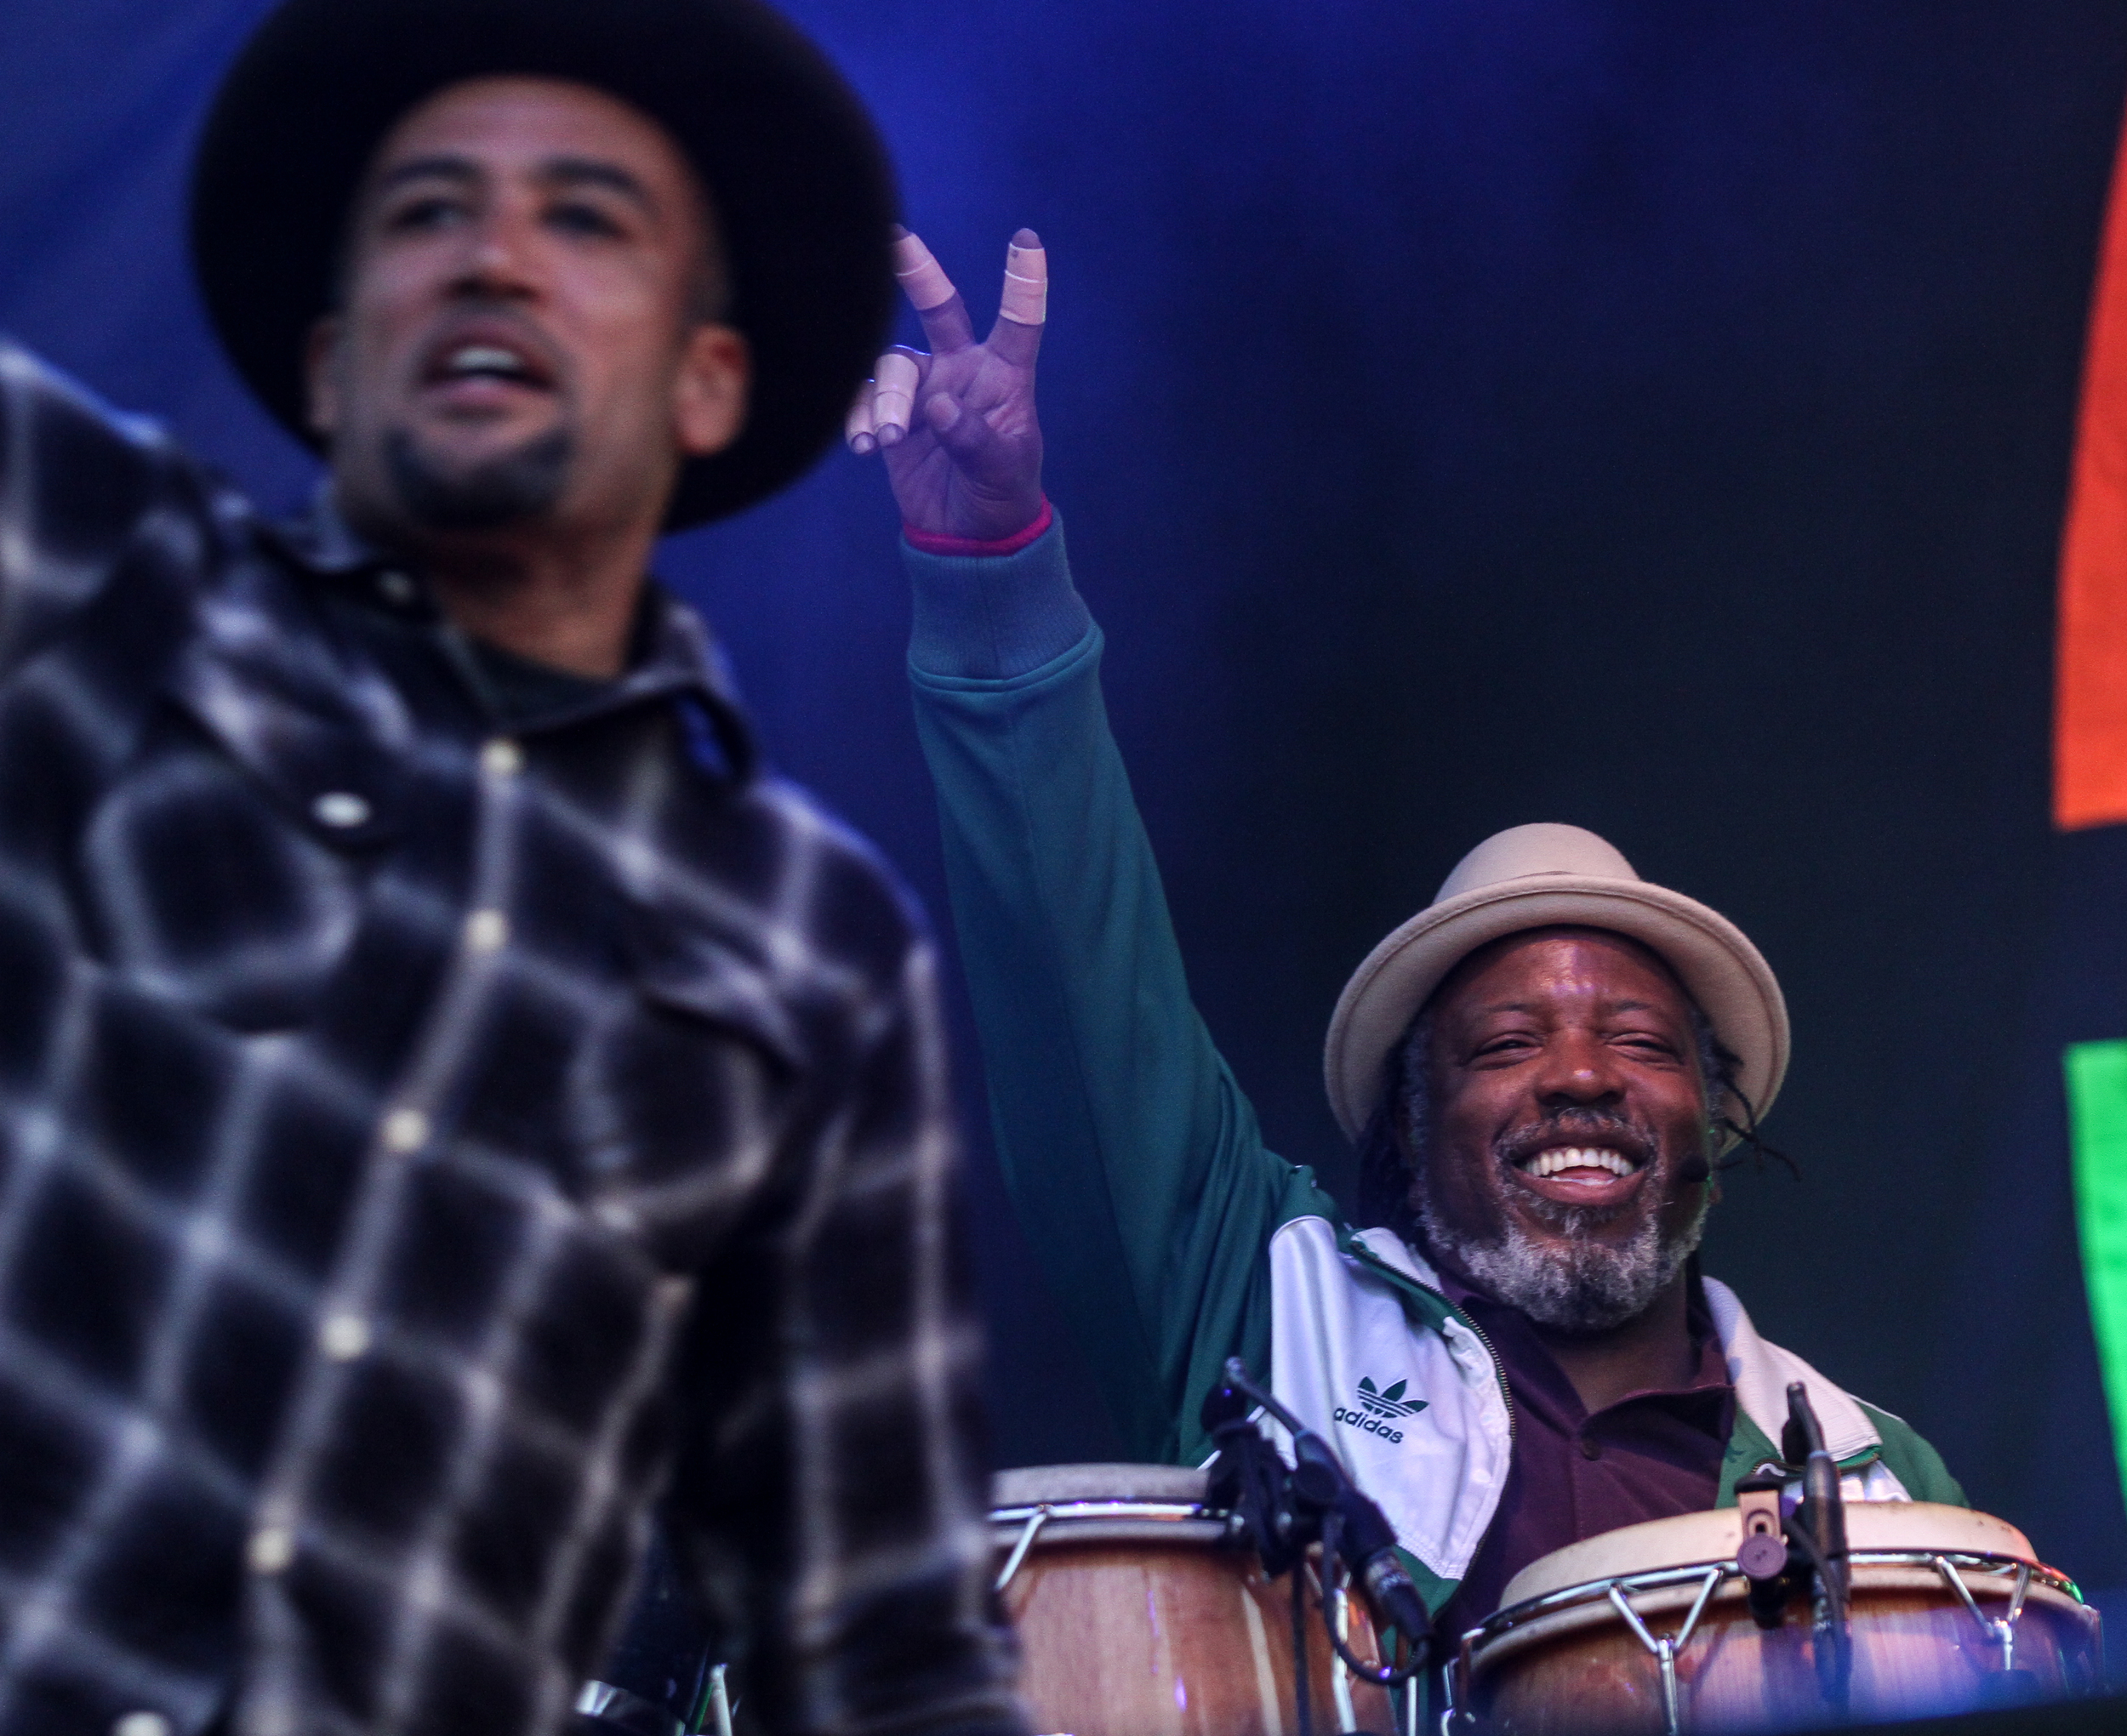 Ben Harper and the Innocent Criminals perform at Boston Calling on May 23, 2015 in City Hall Plaza.